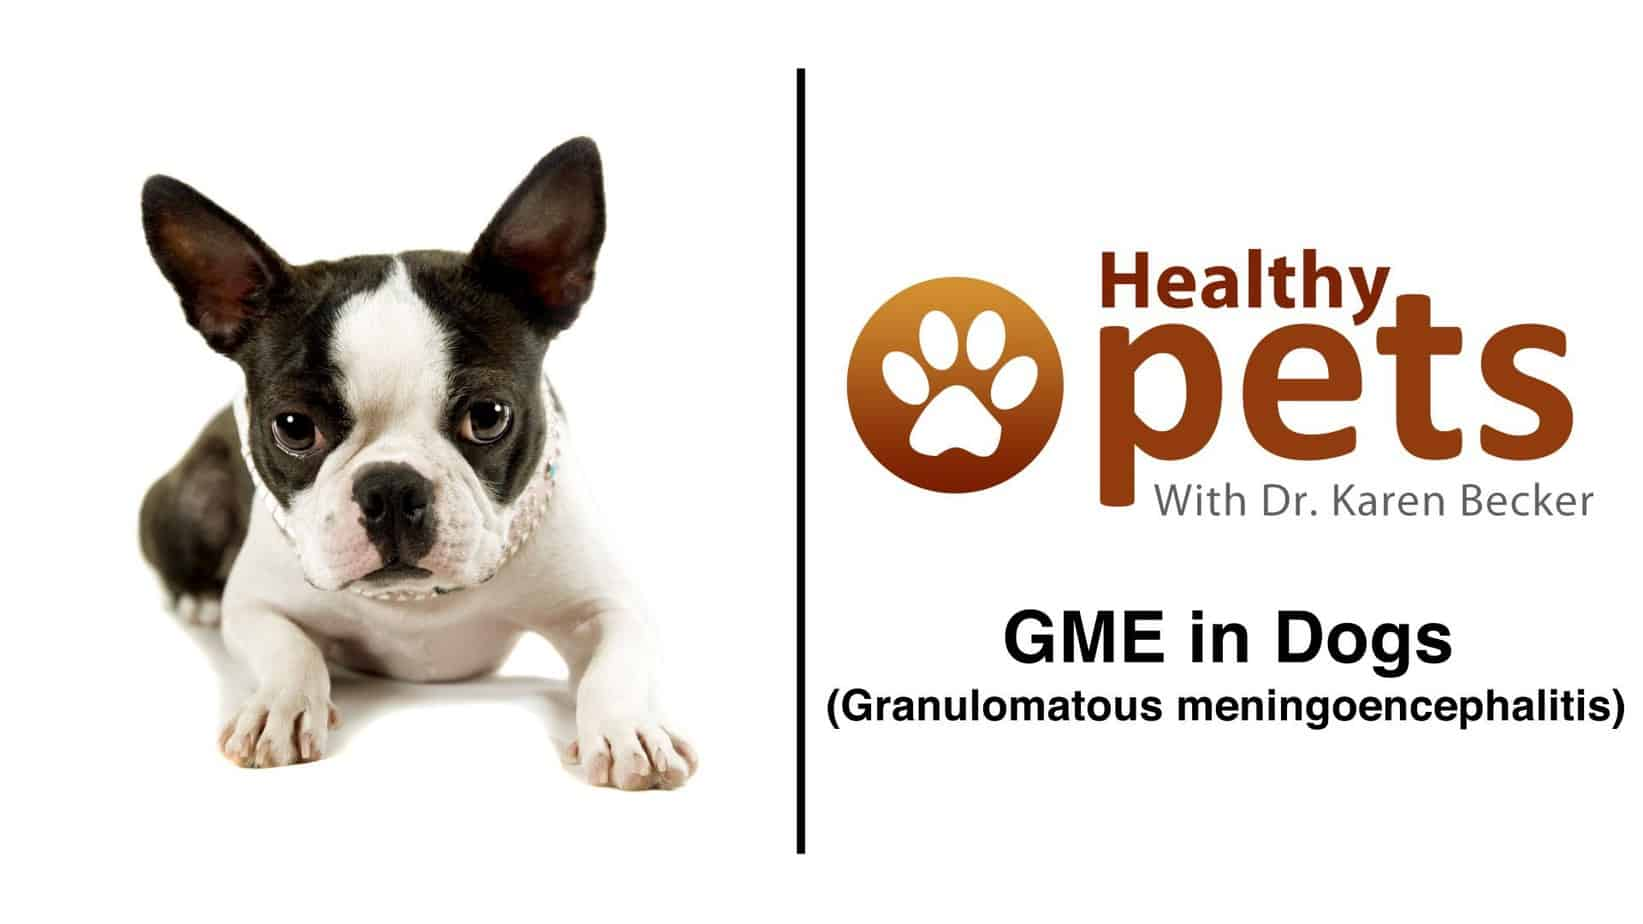 GME: A Deadly Condition You Probably Never Heard Of